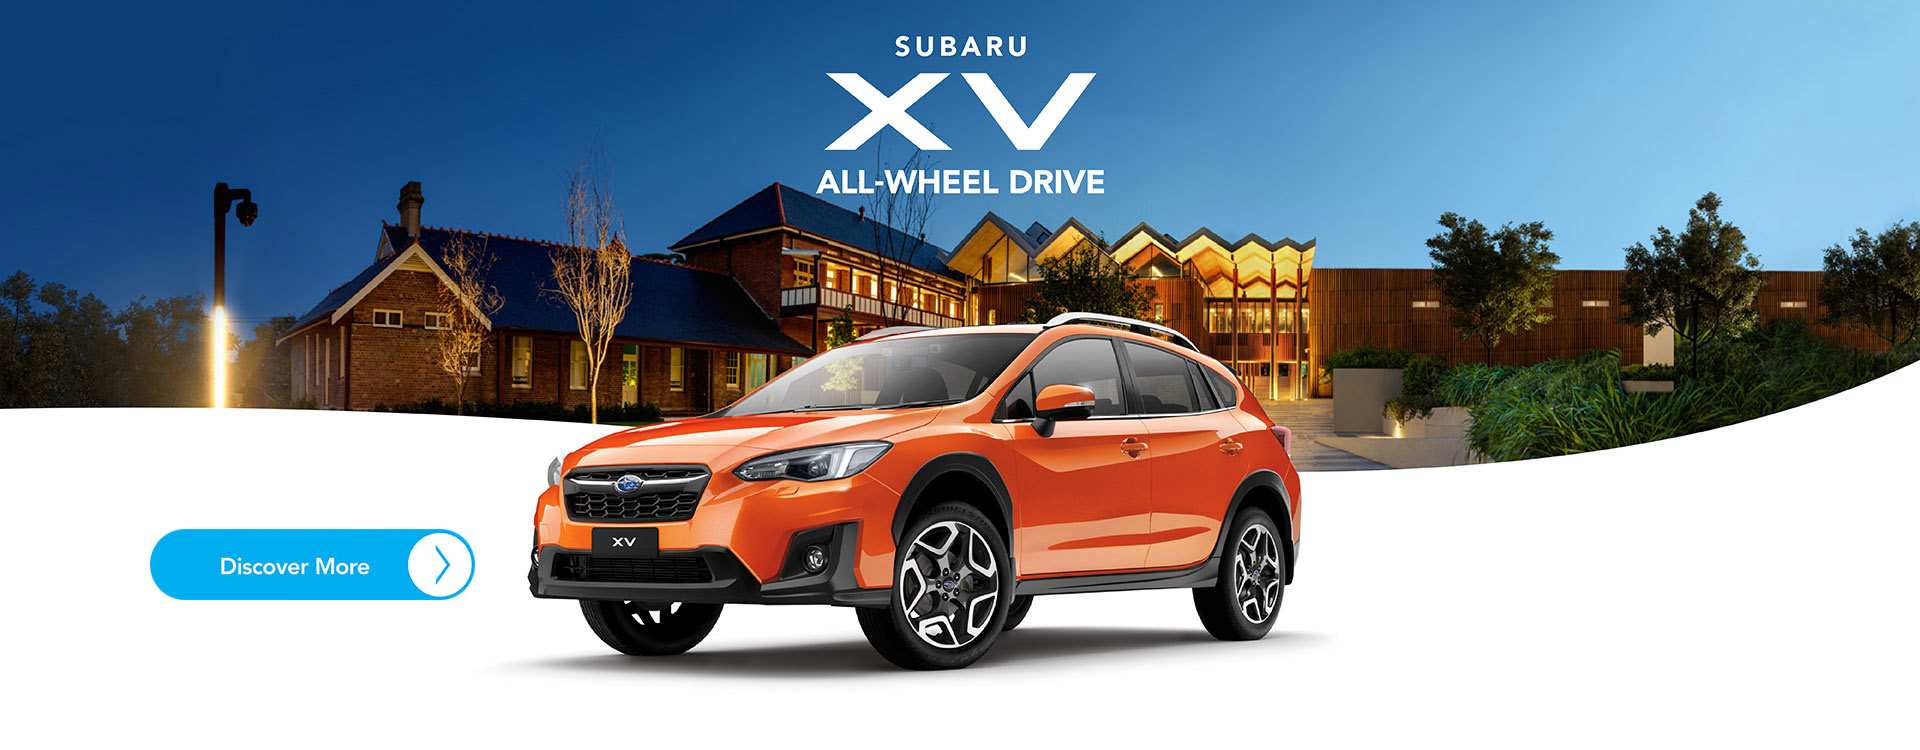 New Subaru XV, including Hybrid e-Boxer, now available at Bathurst Subaru. Test Drive Today!